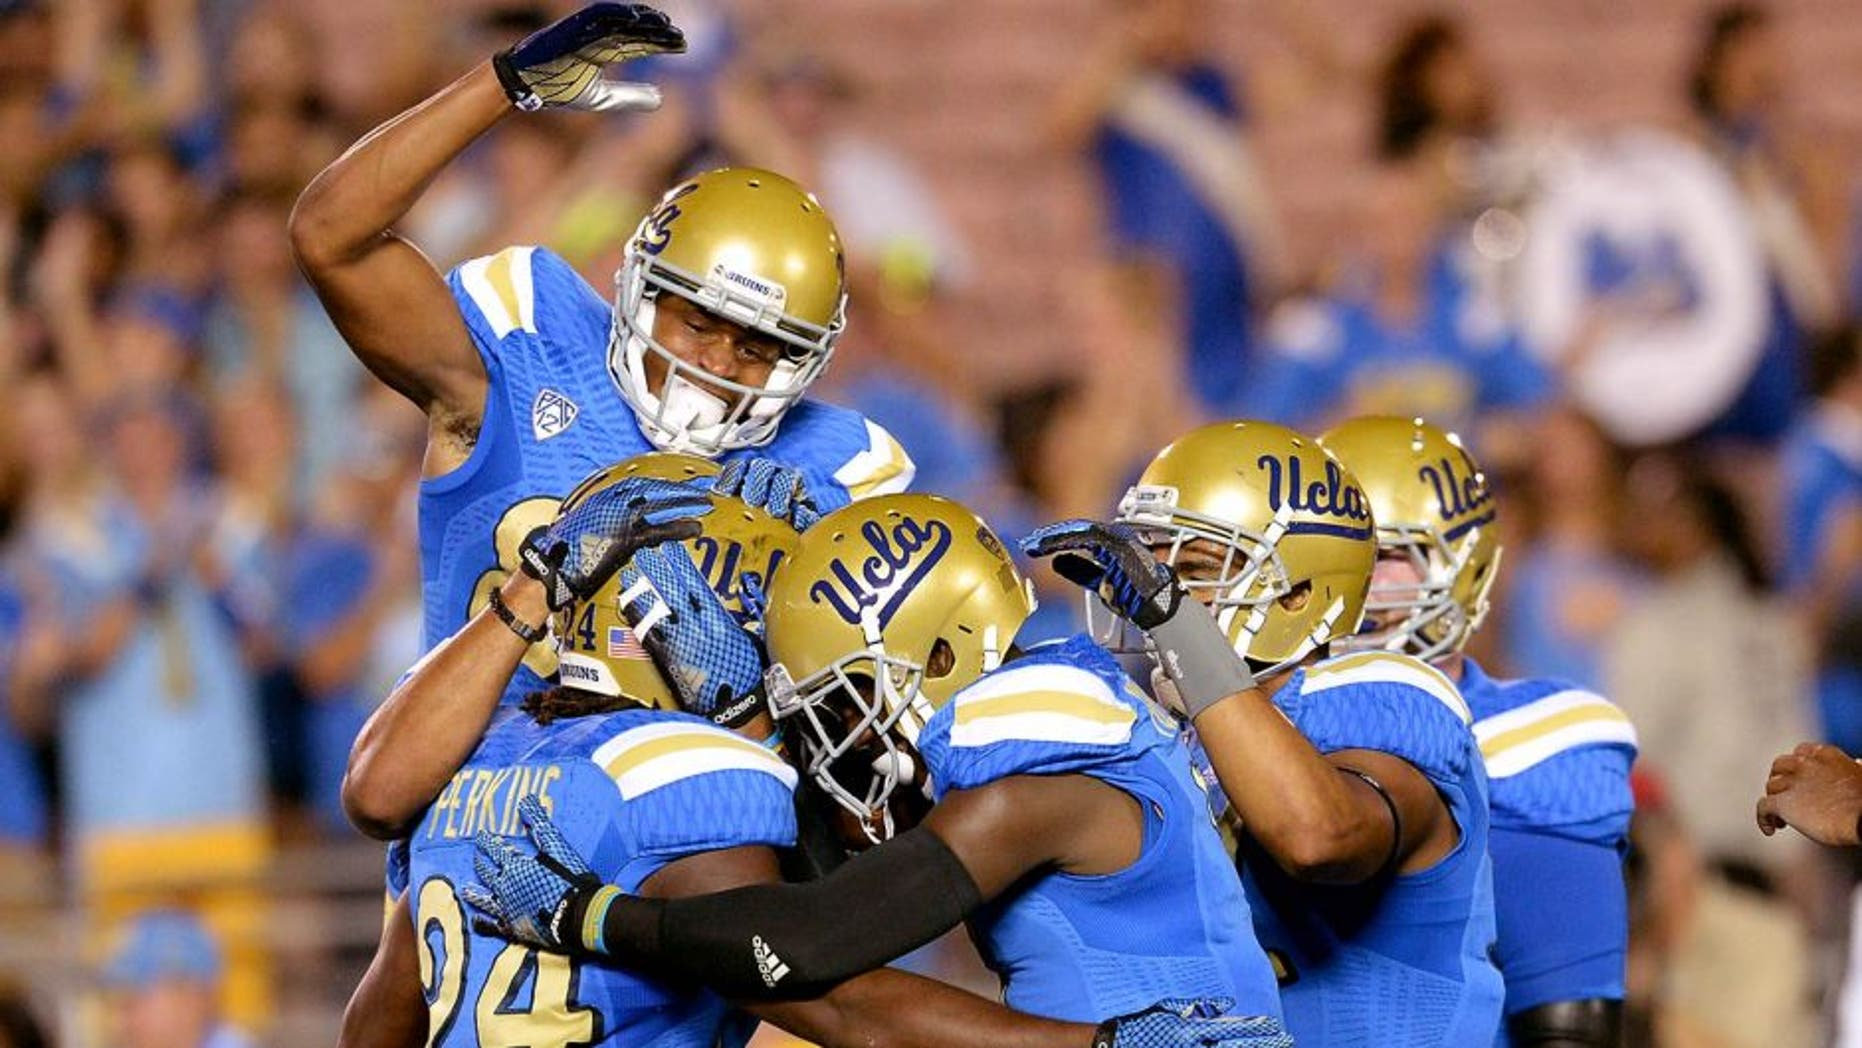 Sep 6, 2014; Pasadena, CA, USA; UCLA Bruins celebrate with running back Paul Perkins (24) after scoring a touchdown in the first quarter of the game against the Memphis Tigers at the Rose Bowl. Mandatory Credit: Jayne Kamin-Oncea-USA TODAY Sports